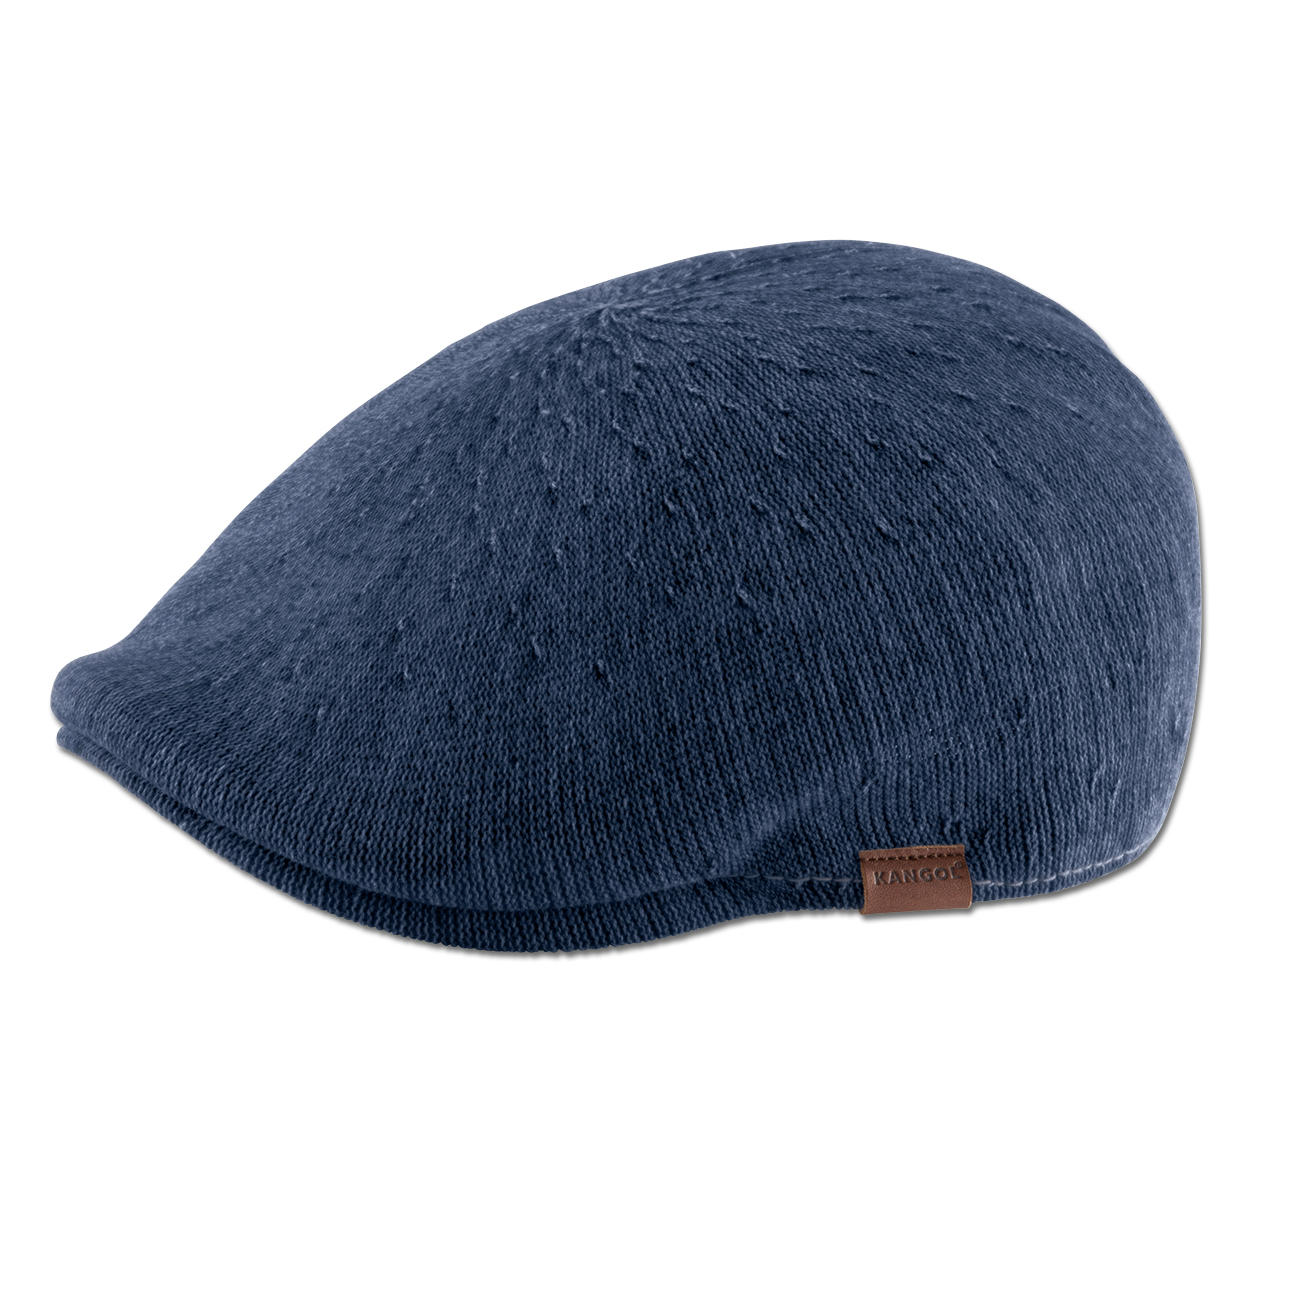 Kangol® Denim Flat Cap - Fashionable slim fit. Airy knitwear. Casual denim  look 4029ad9c35b